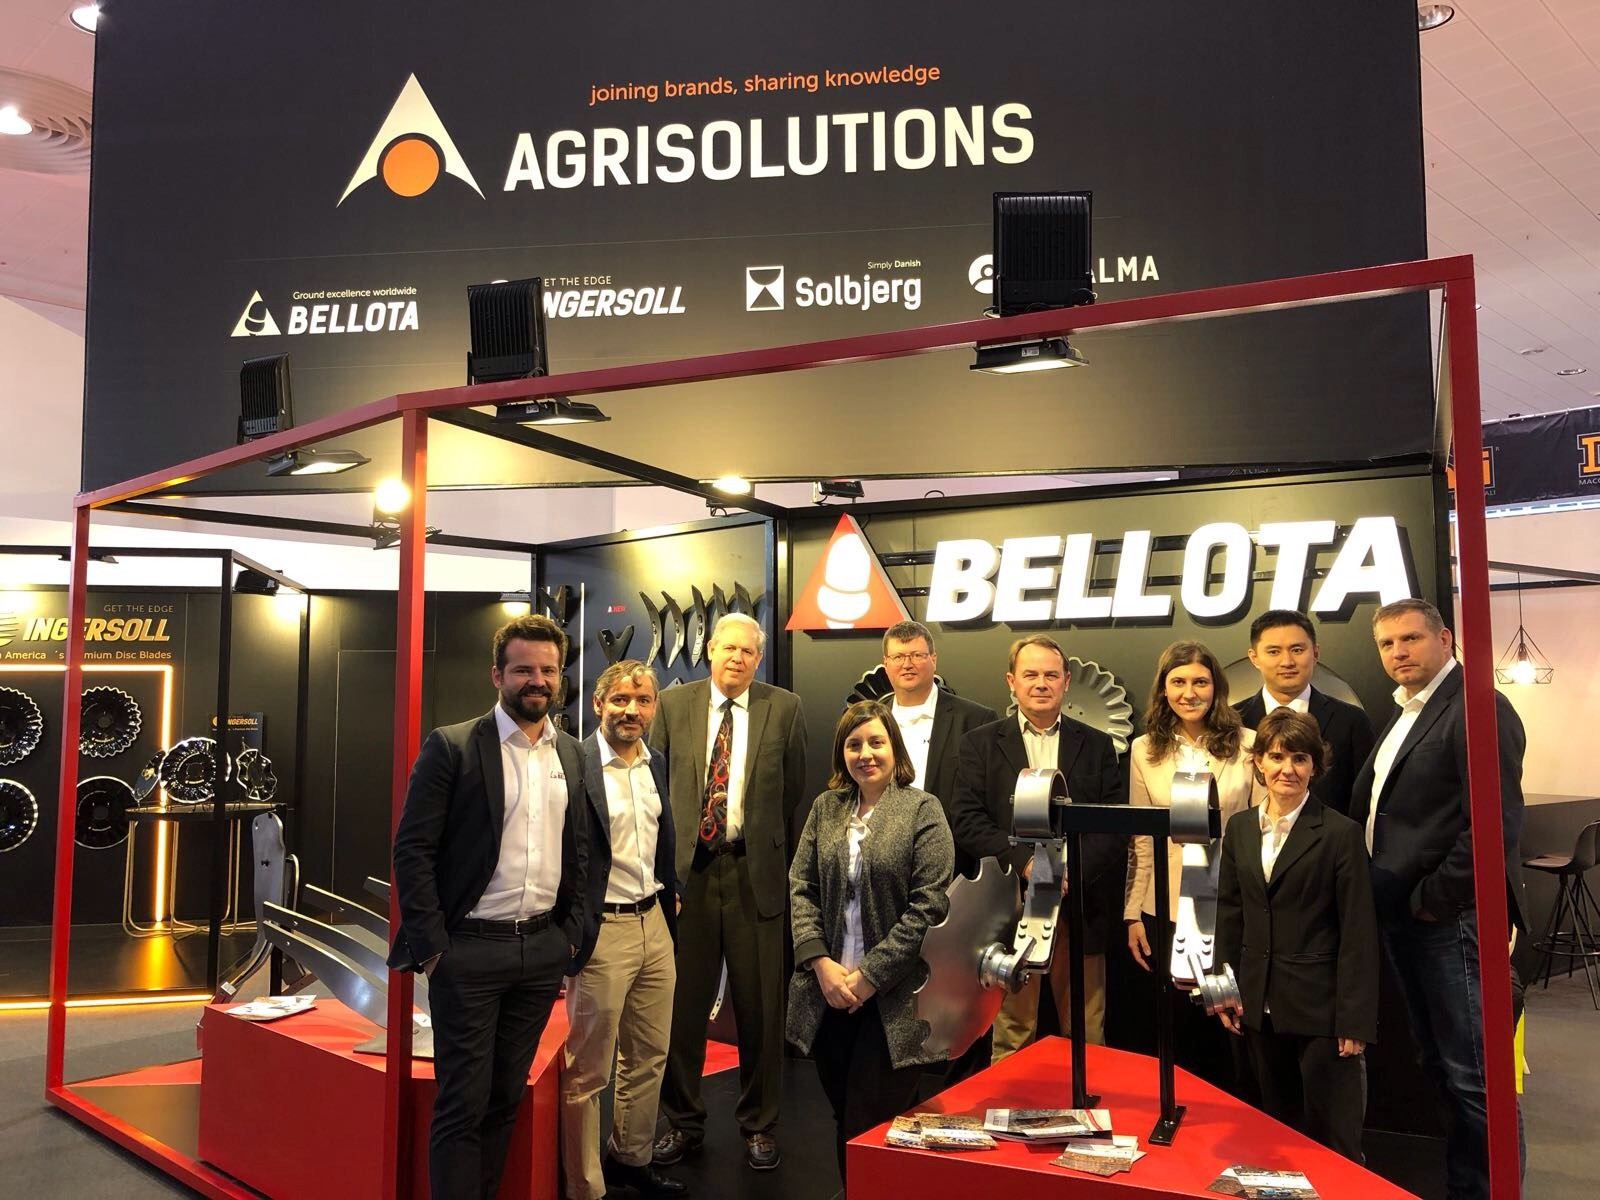 BelotaAgrisolutionsAgritechnica-2017-02